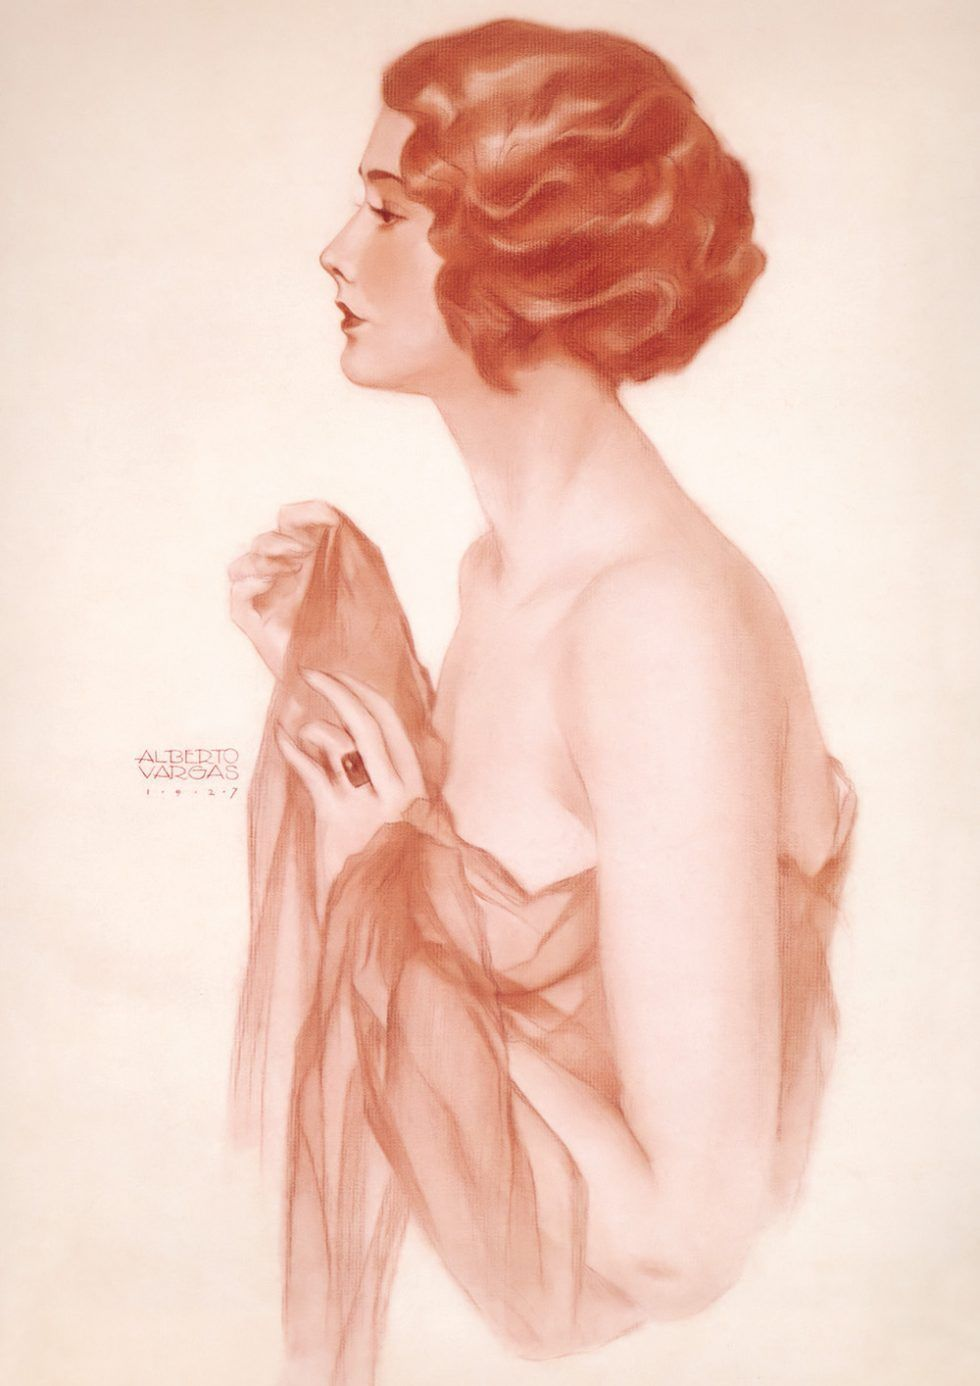 Anna Mae Clift. Art of Alberto Vargas